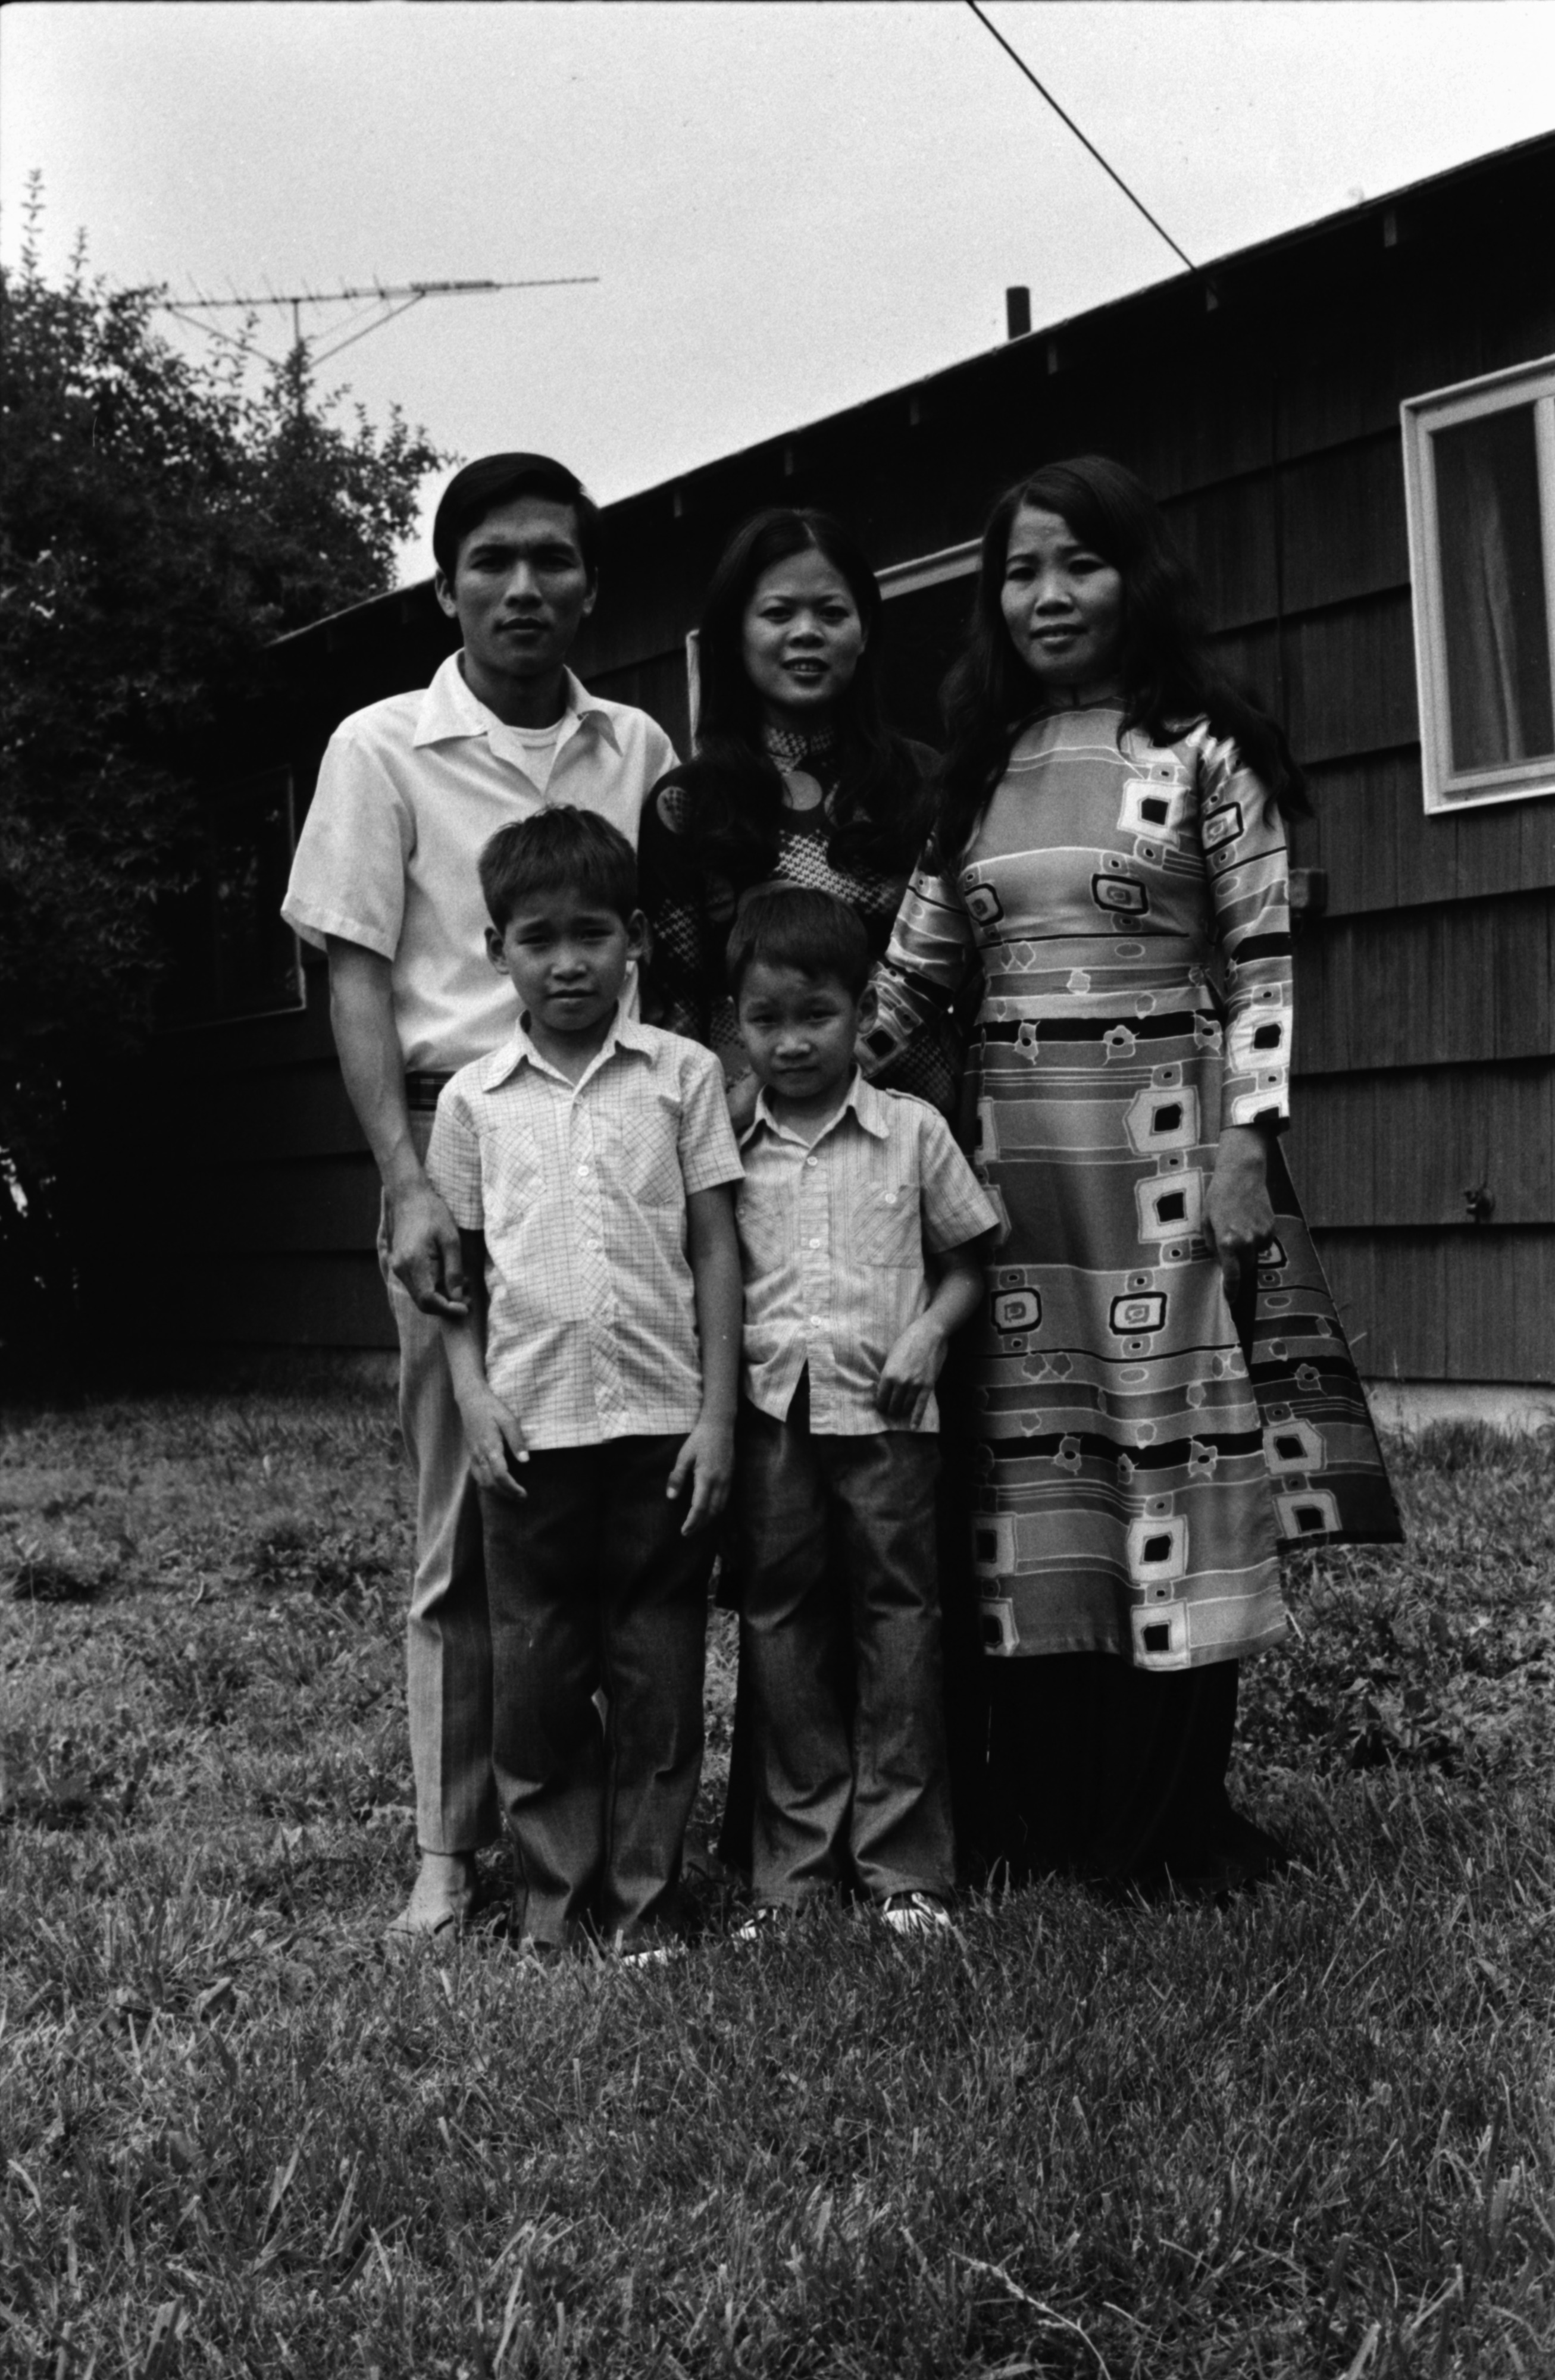 Ngam Van Tran and Family are Recent Refugees from Vietnam, June 1975 image